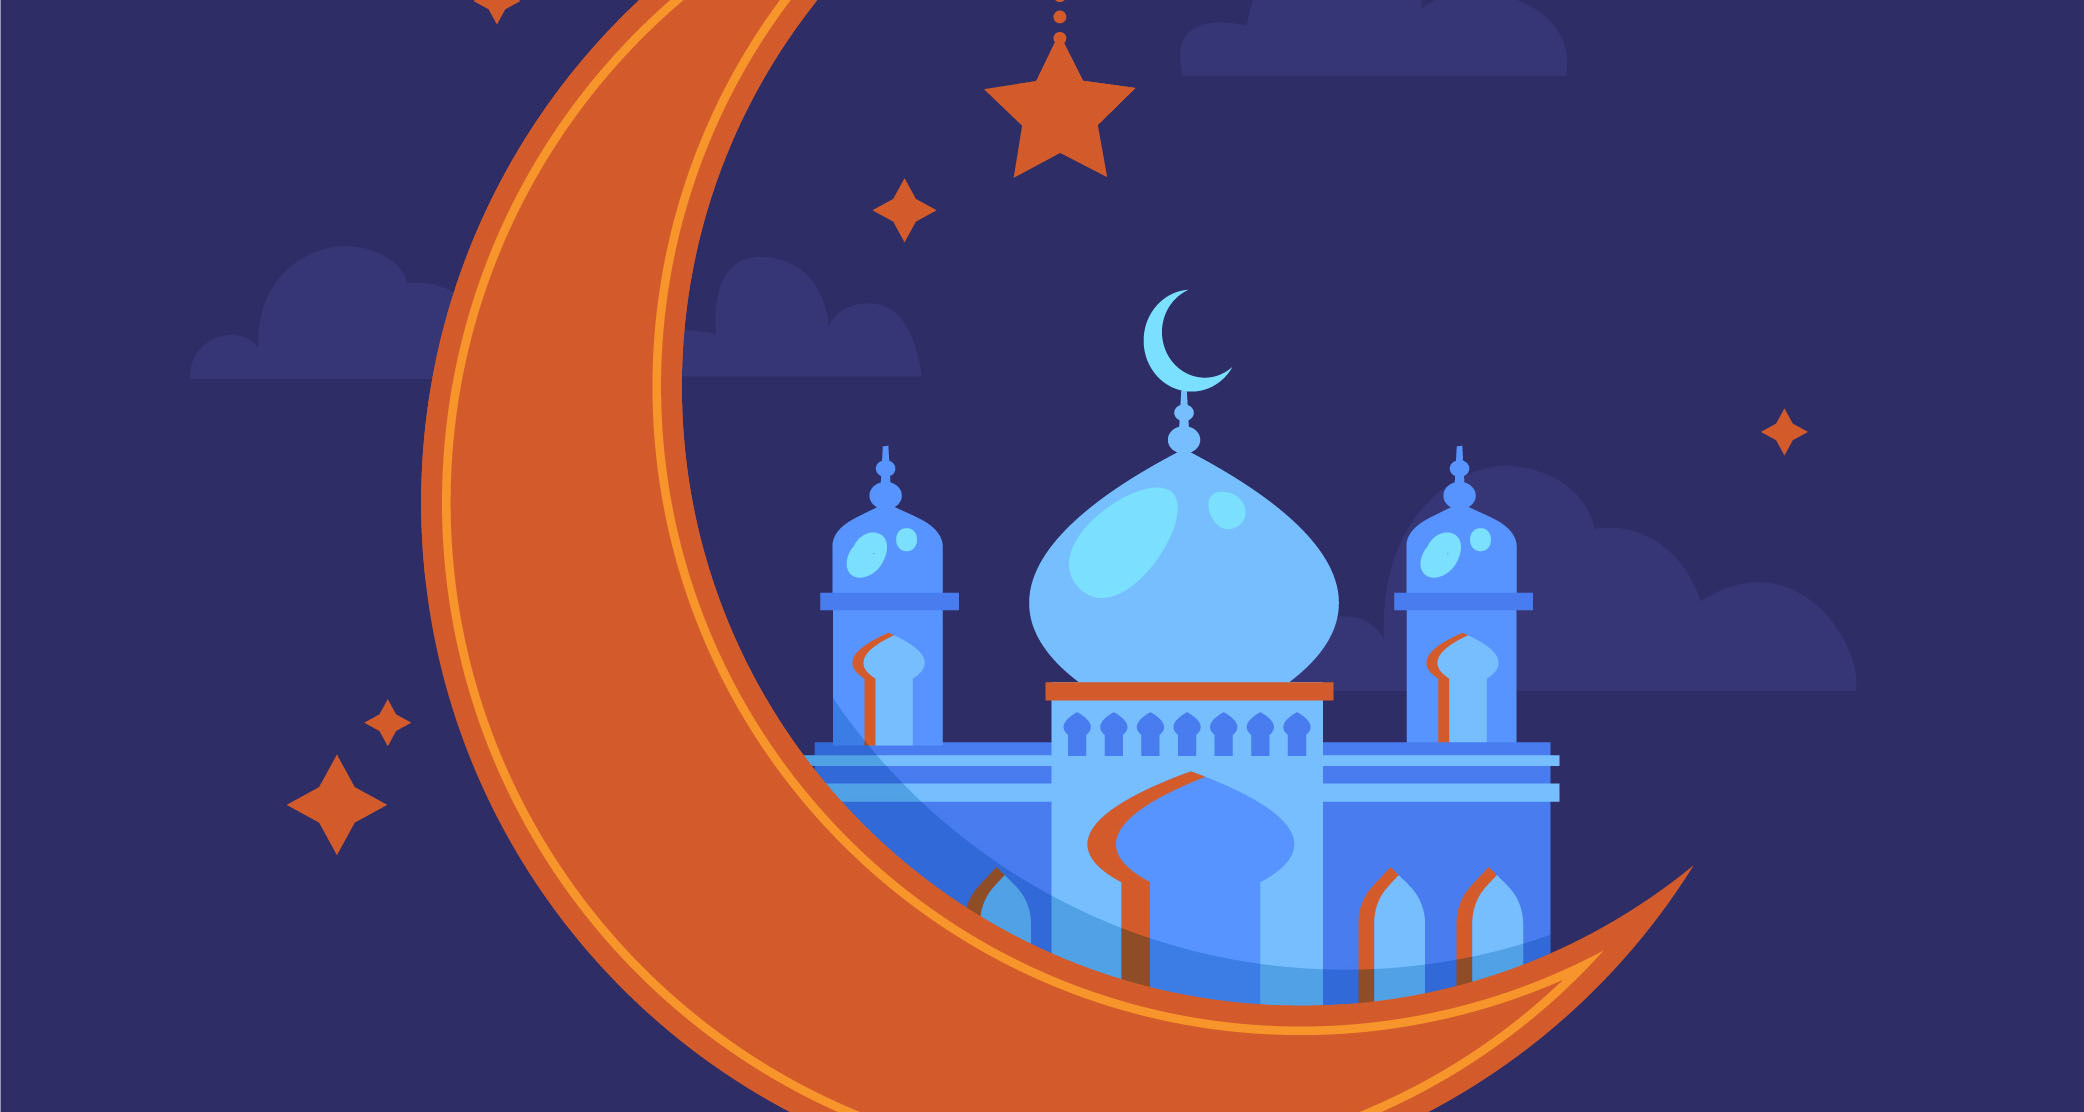 Graphic of the Islamic star and crescent moon